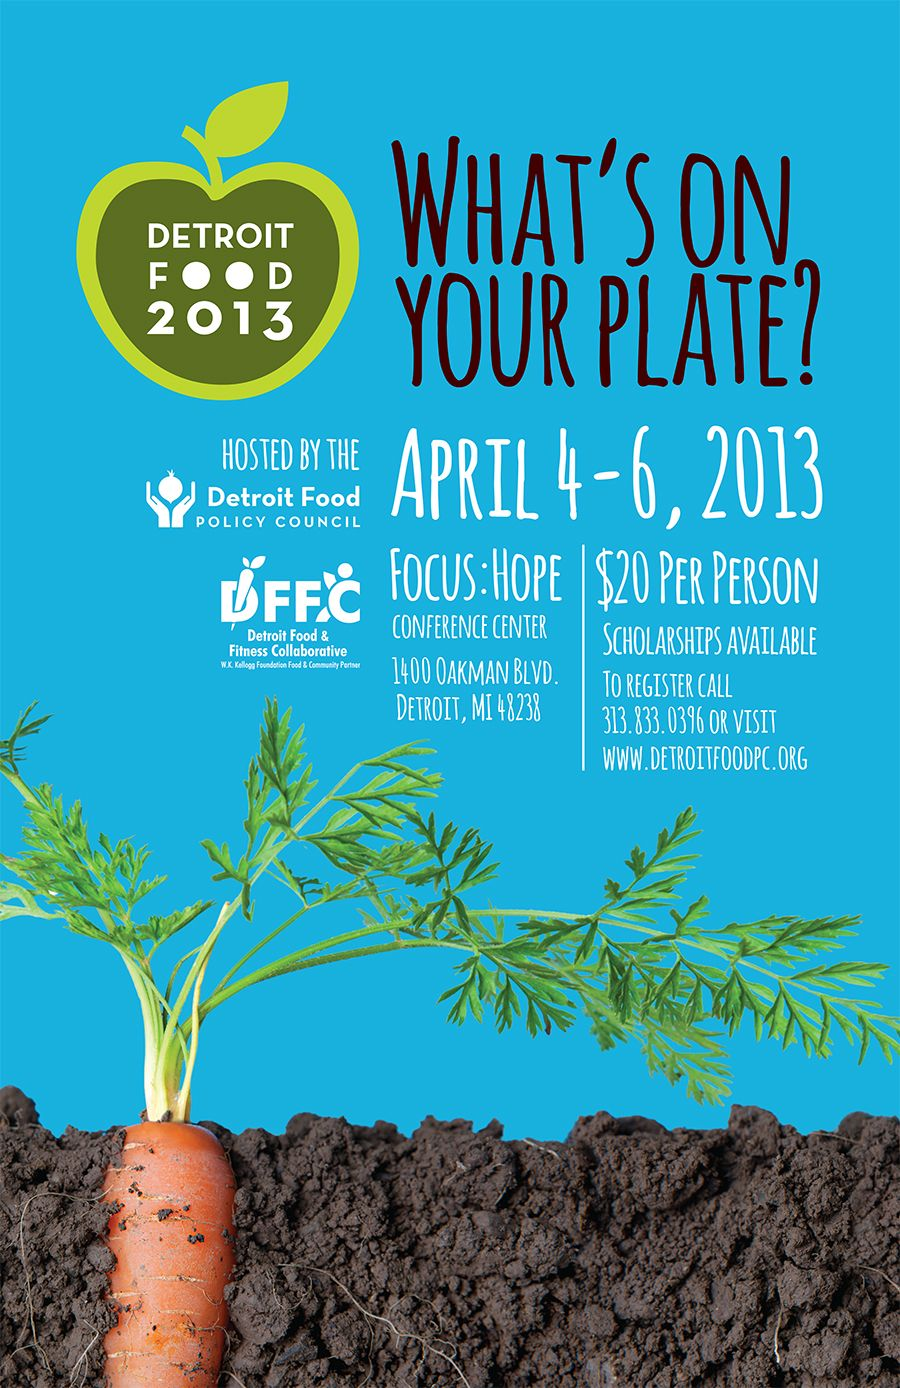 The Detroit Food Policy Council S What S On Your Plate Poster Was A Graphic Design Usa Award Winner Detroit Food Food Policy Food